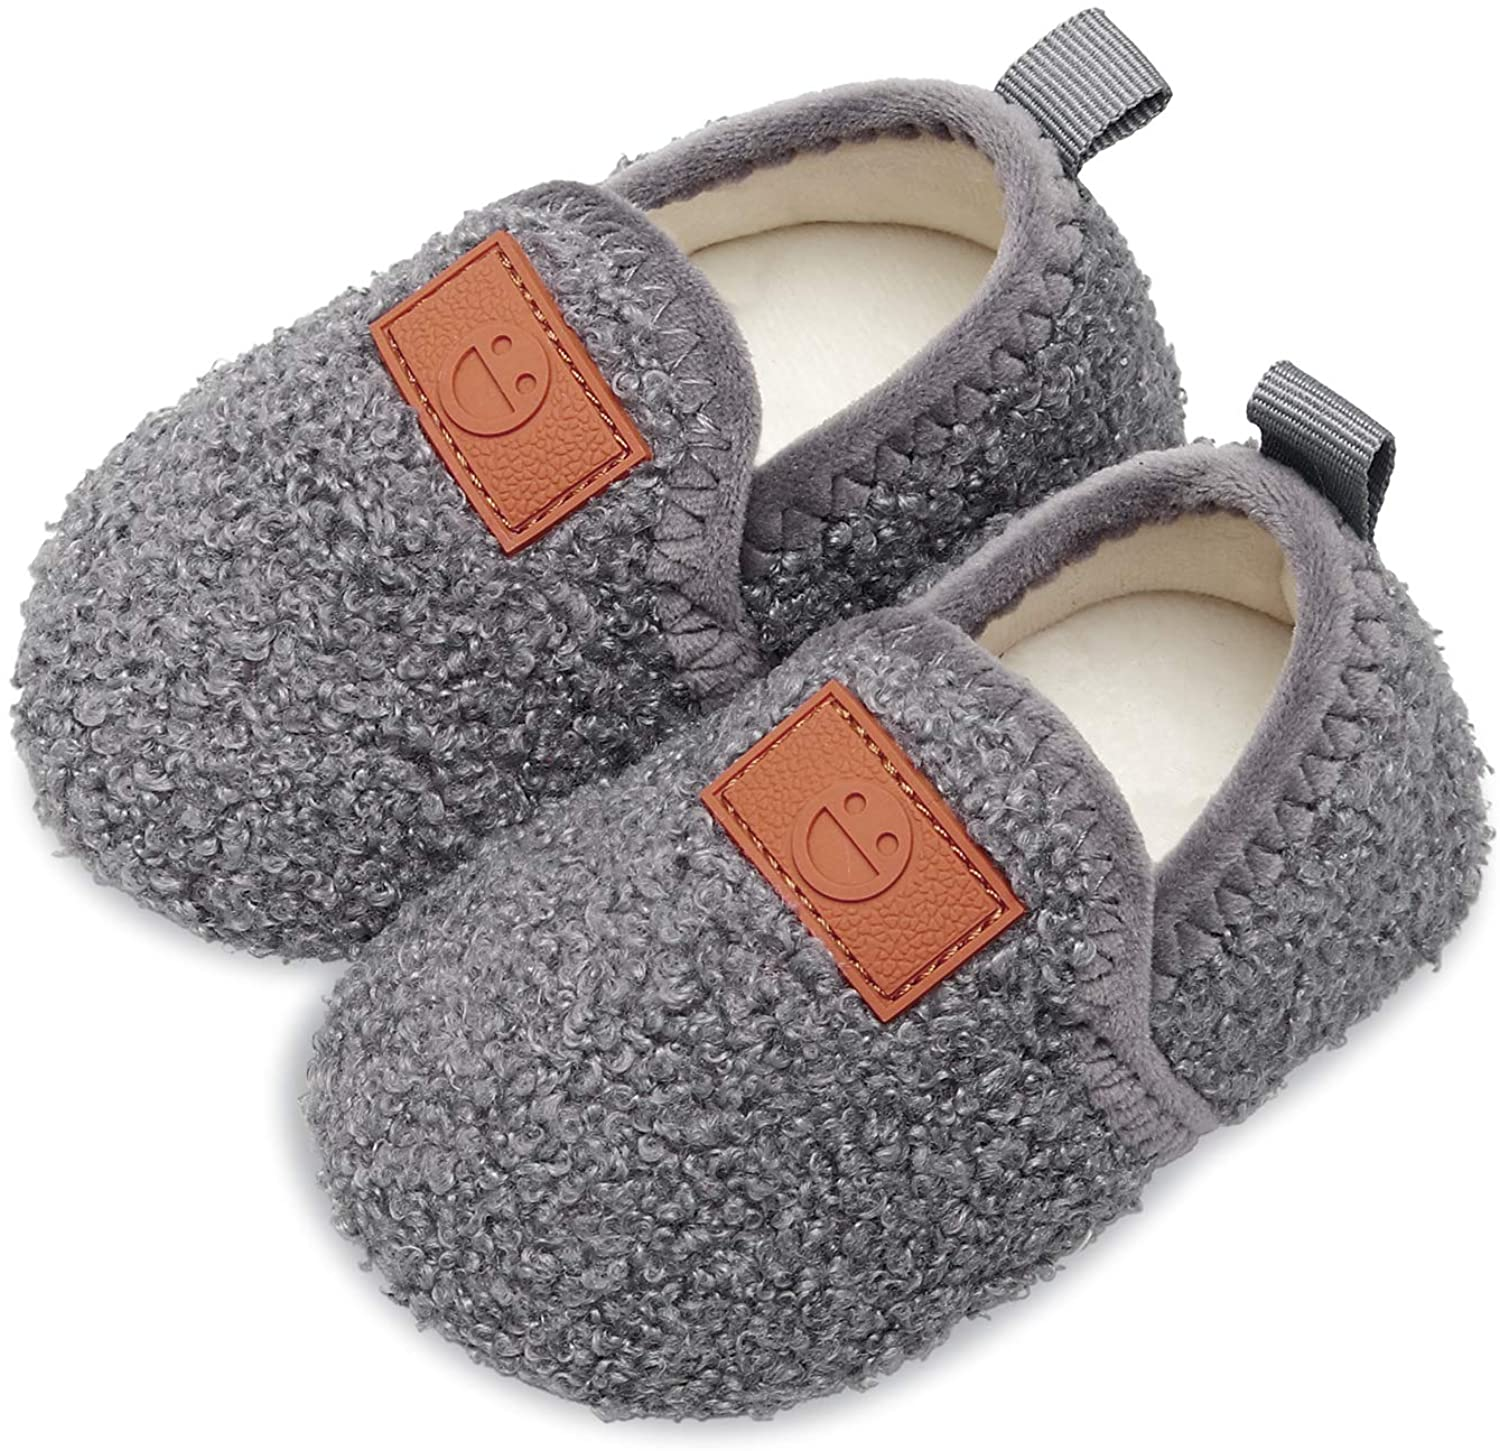 Scurtain Kids Toddler Slippers Socks Artificial Woolen Slippers for Boys Girls Baby with Non-Slip Rubber Sole